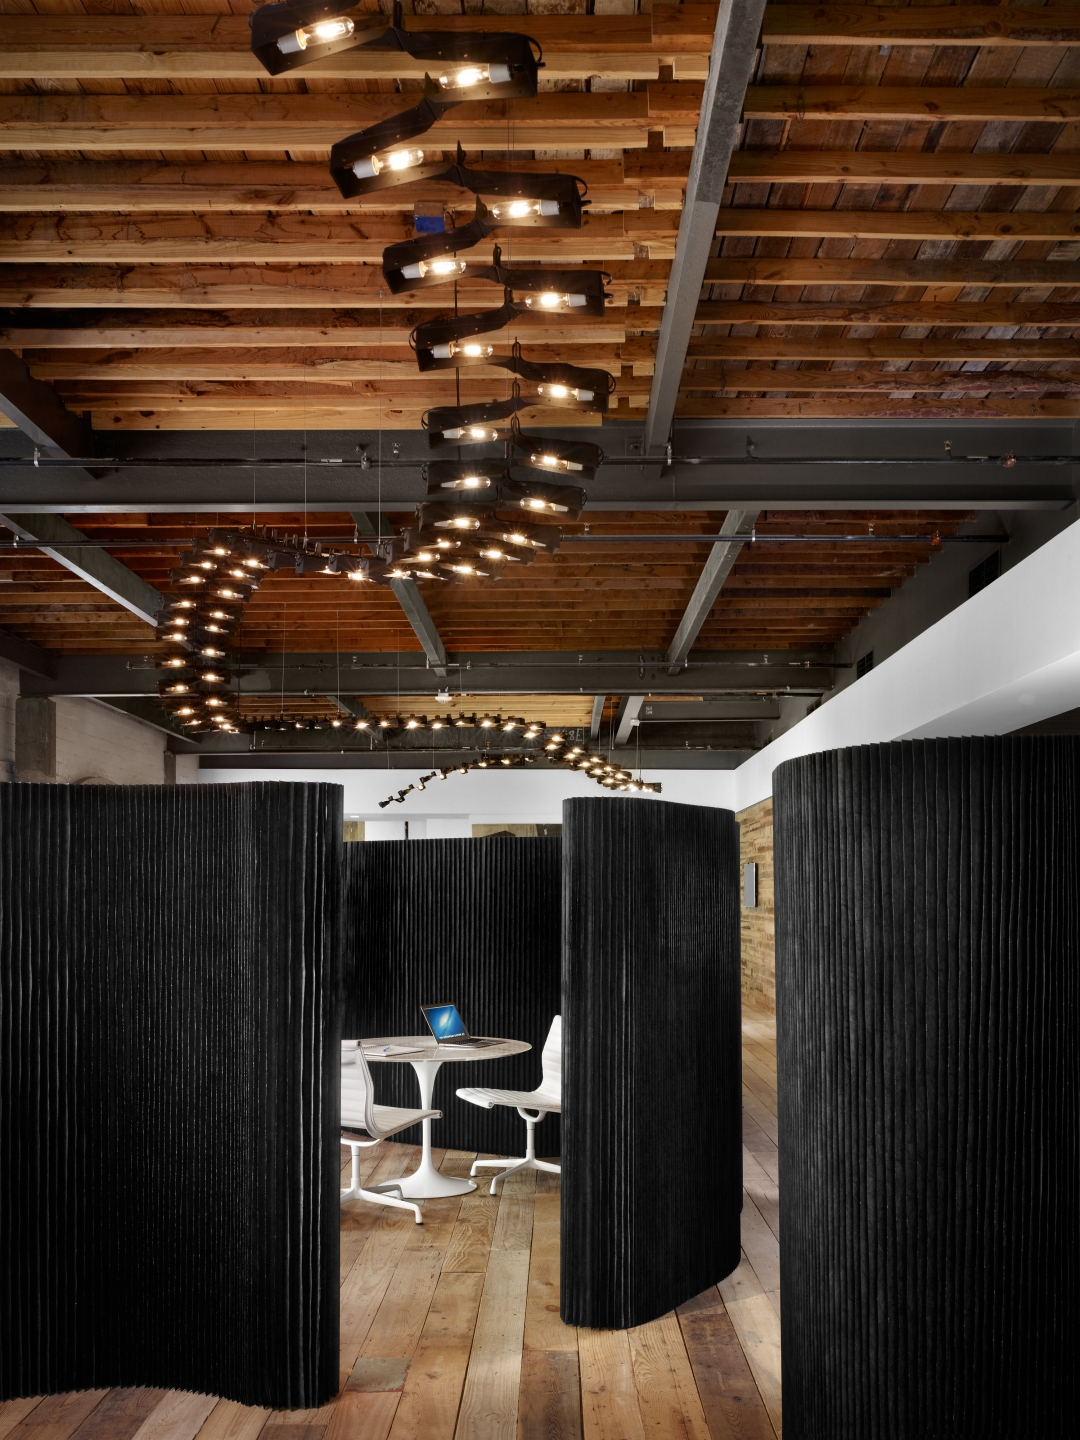 molo black textile softwalls at the Peddle LLC office in Austin